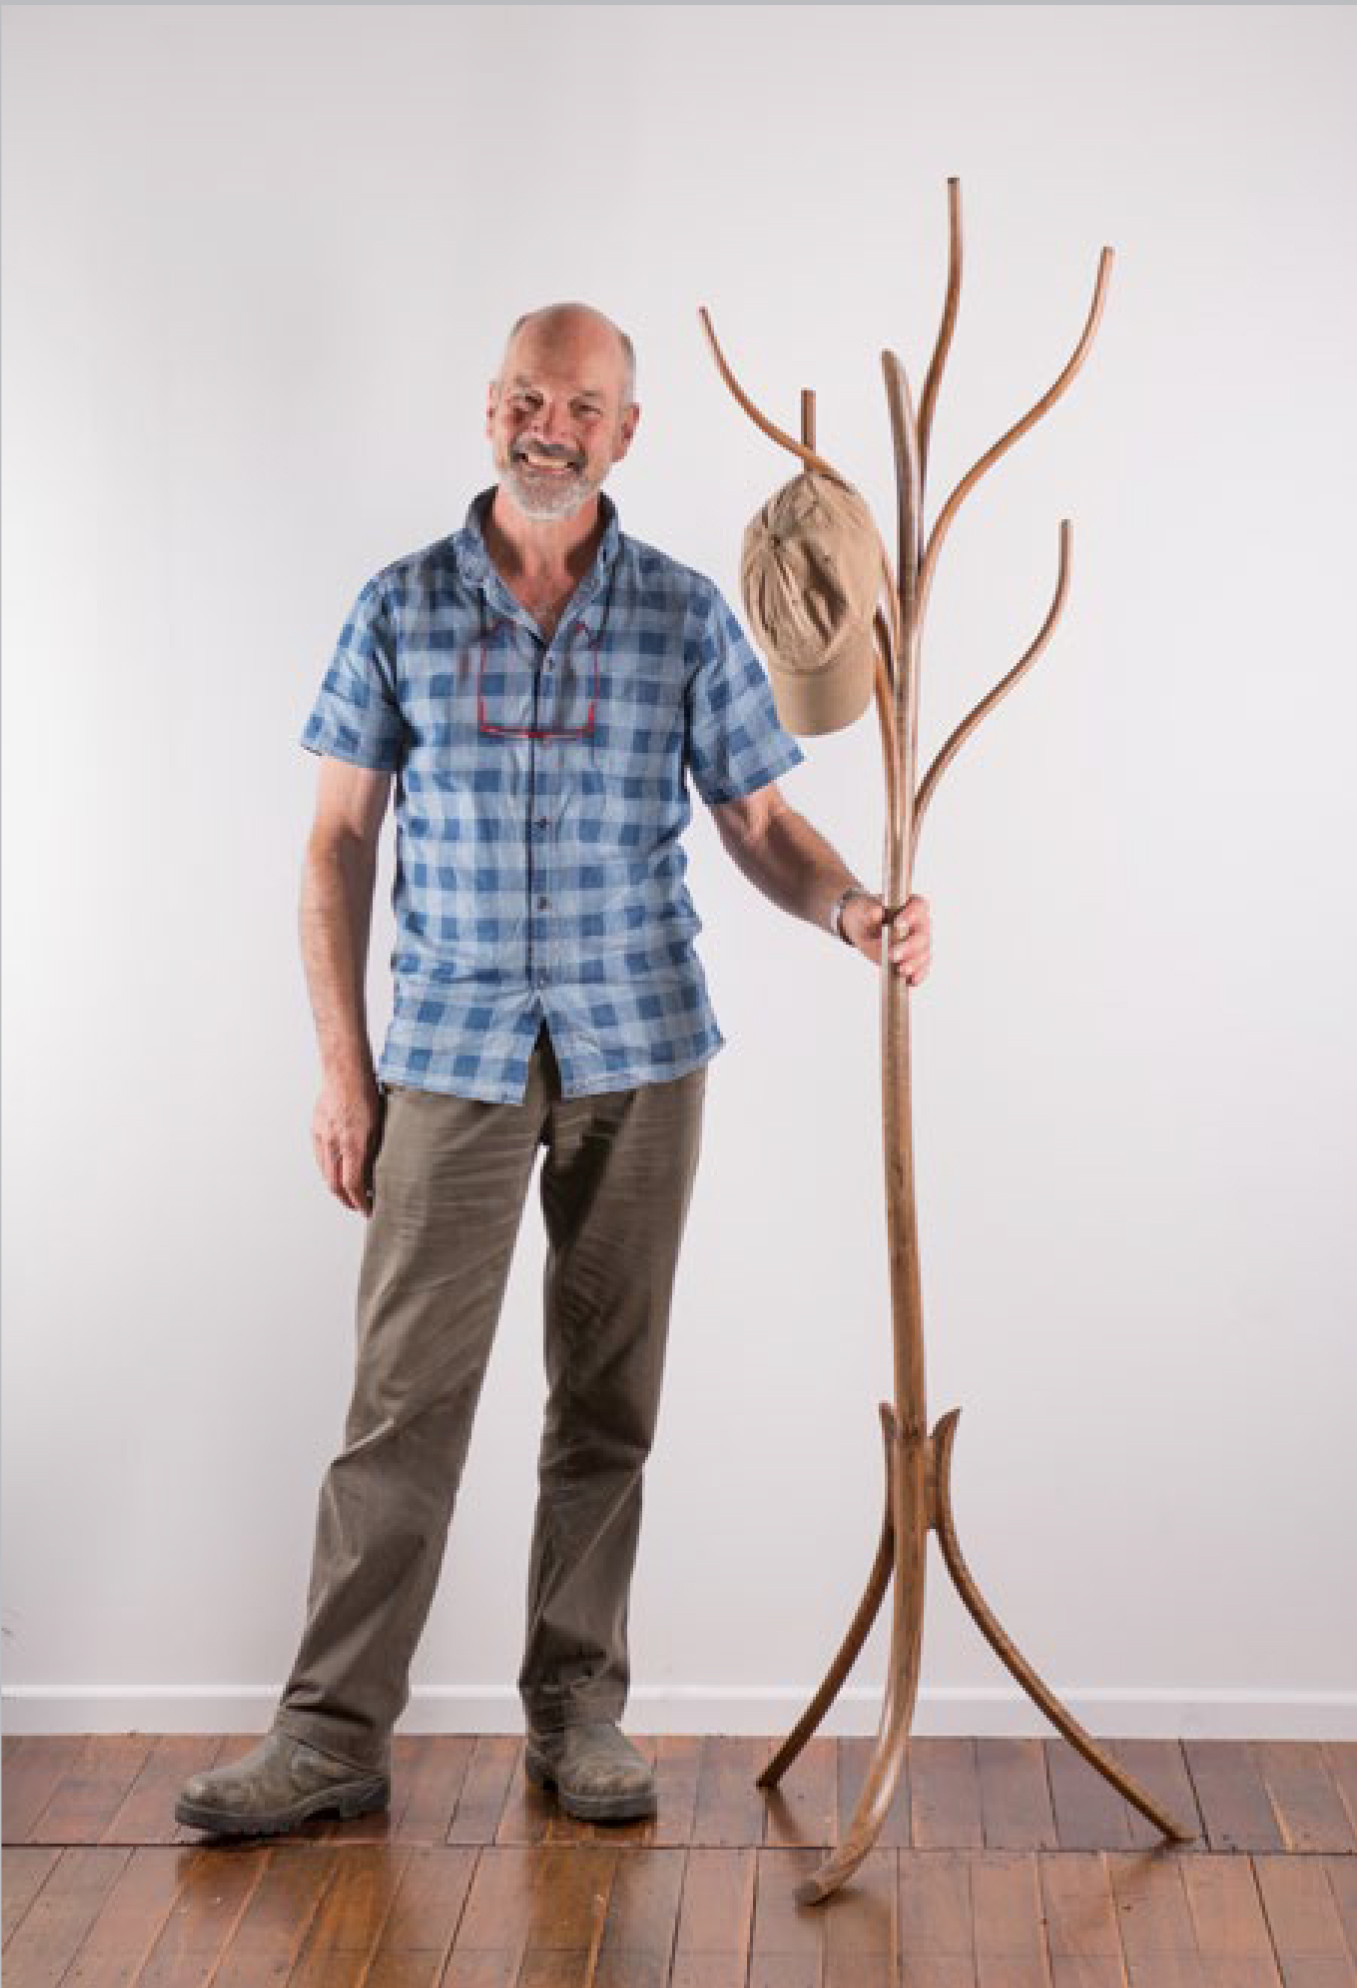 FCANZ website   DAVID HAIG: INSTRUCTING IN THE FINE ART OF WOODWORKING AND DESIGN